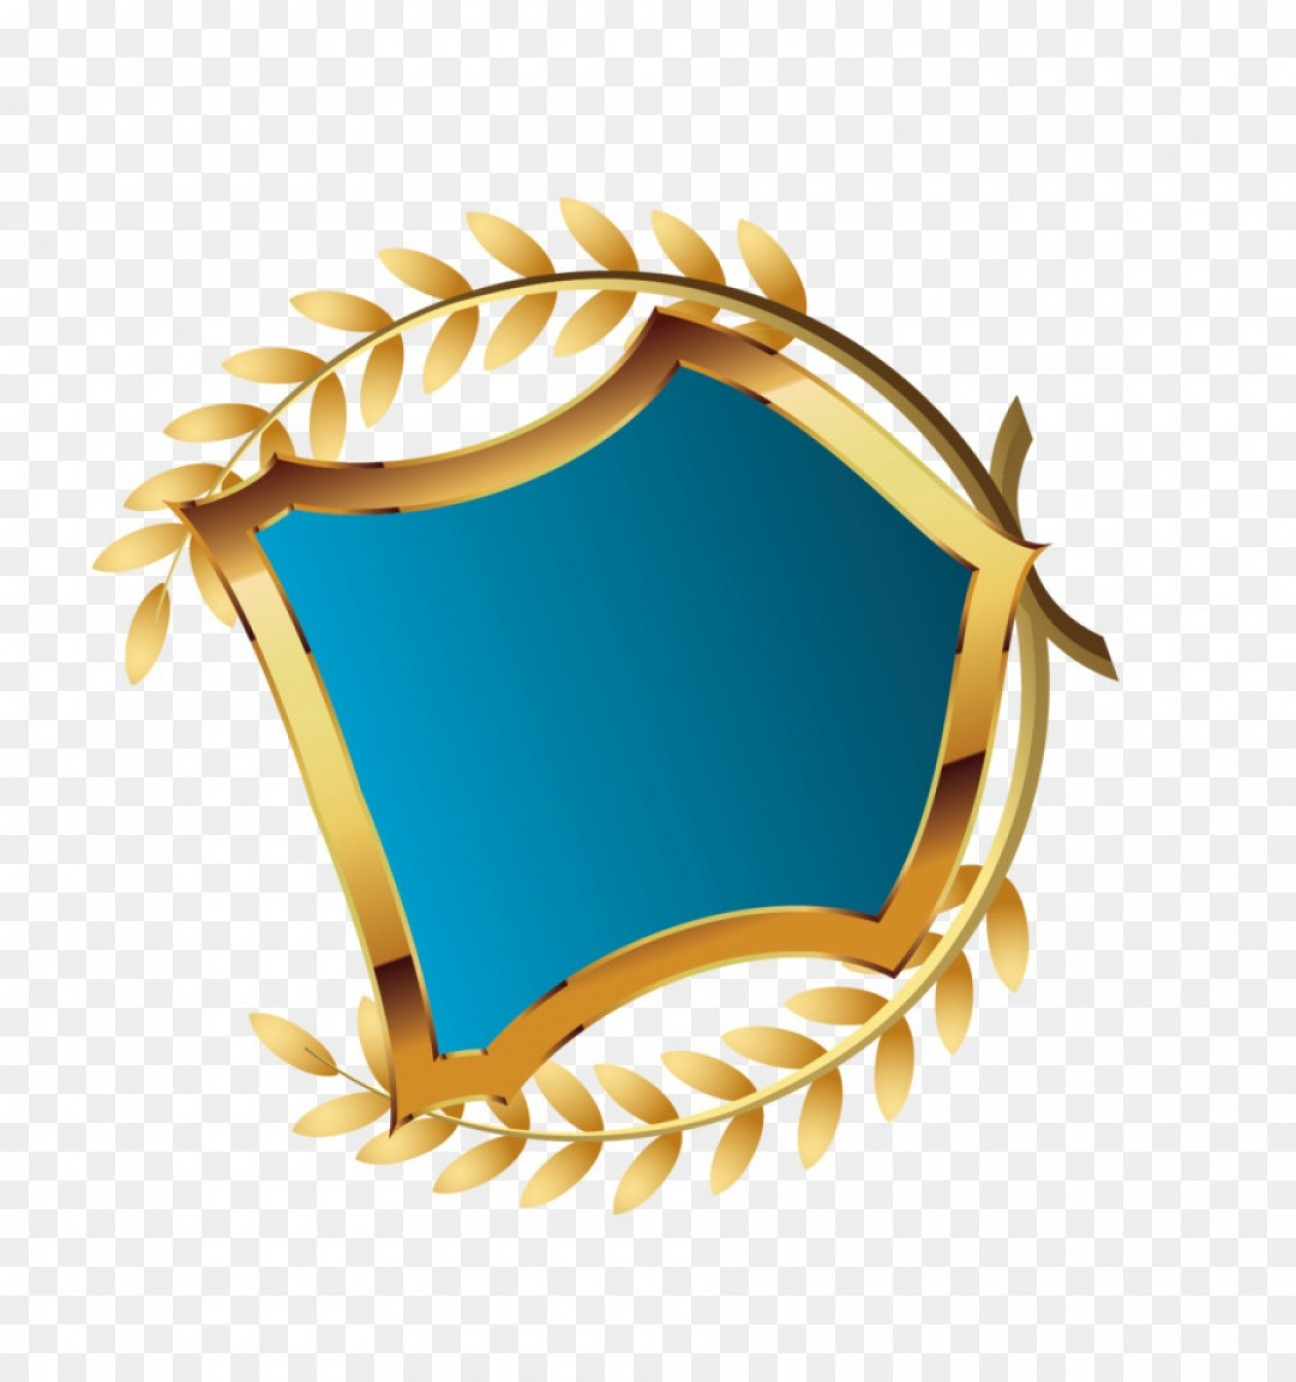 Png Icon Blue Shield Vector Graphics Exquisite.